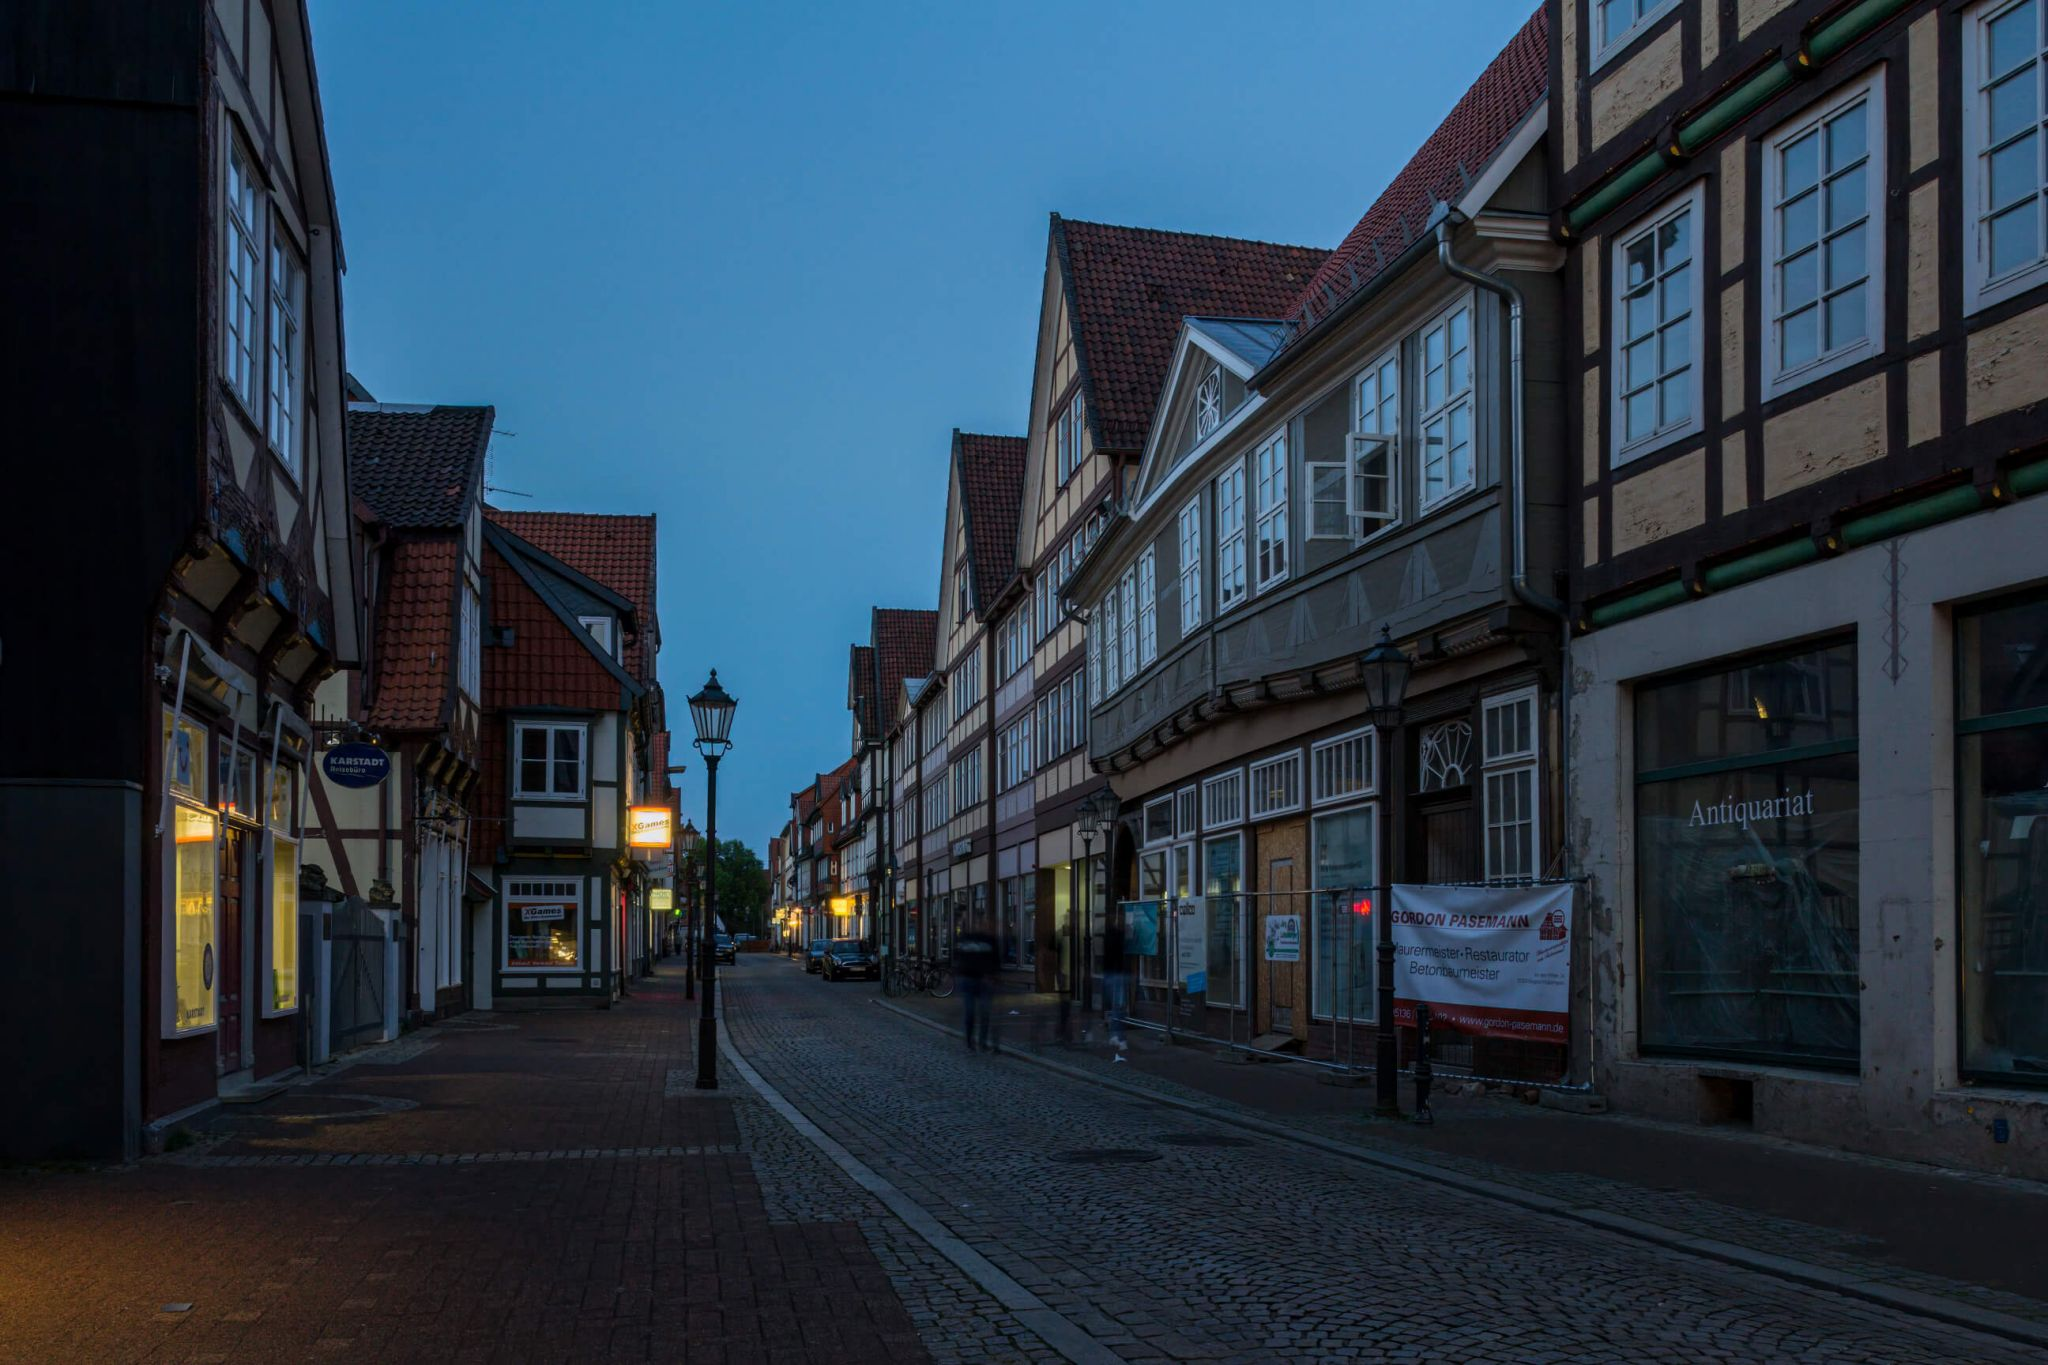 Bergstraße Celle, Germany